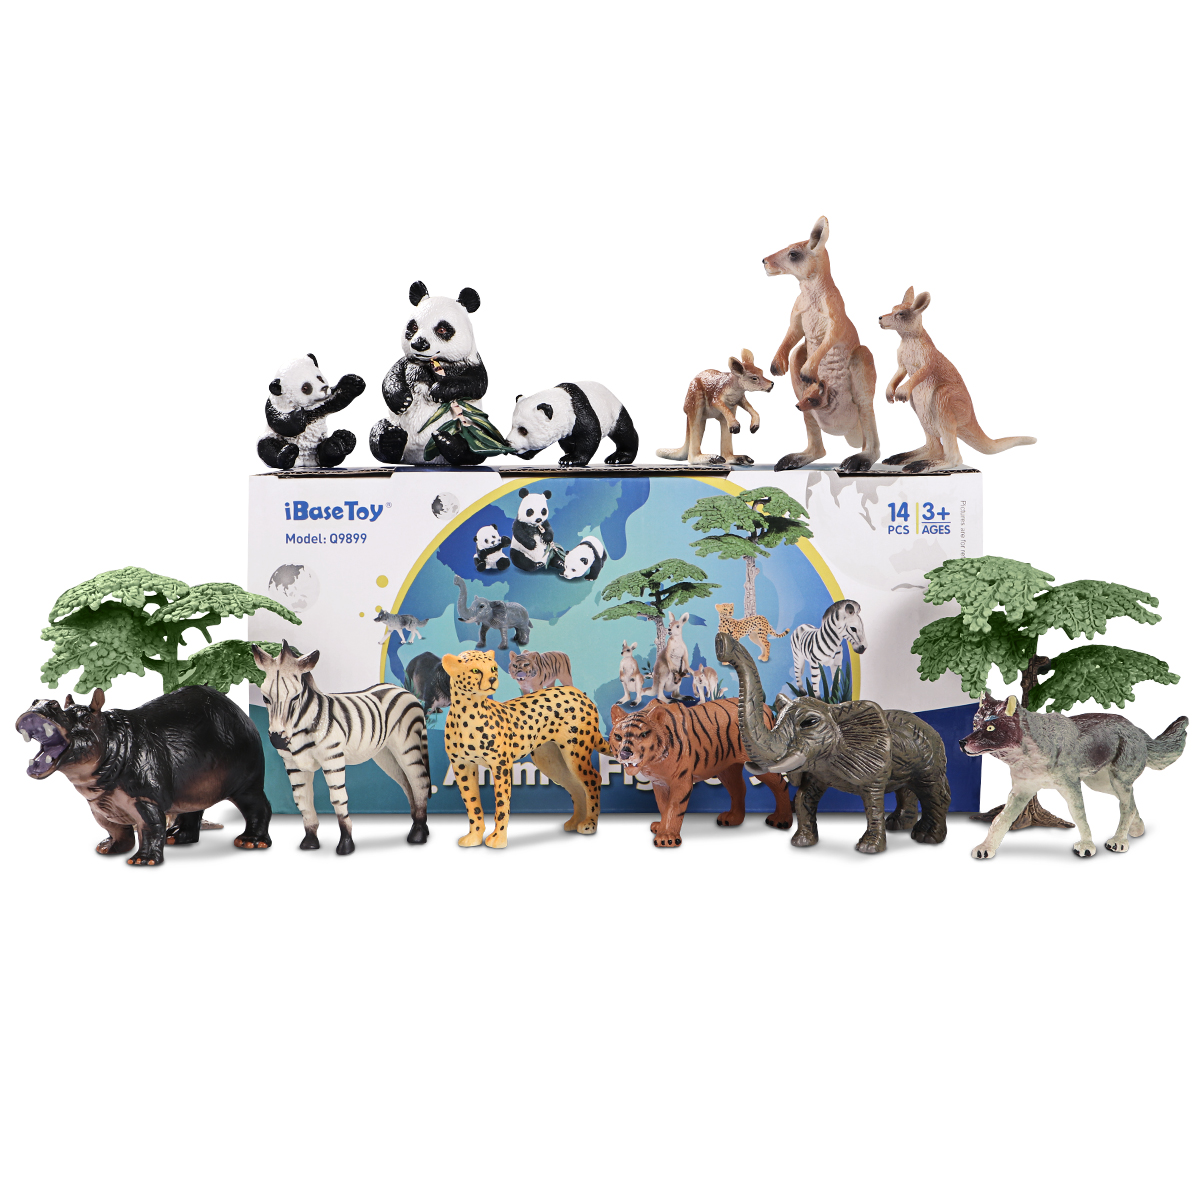 IBaseToy 14PCS Animal Figures Set Realistic Toy Wild Animal Models For Kids And Toddler Educations